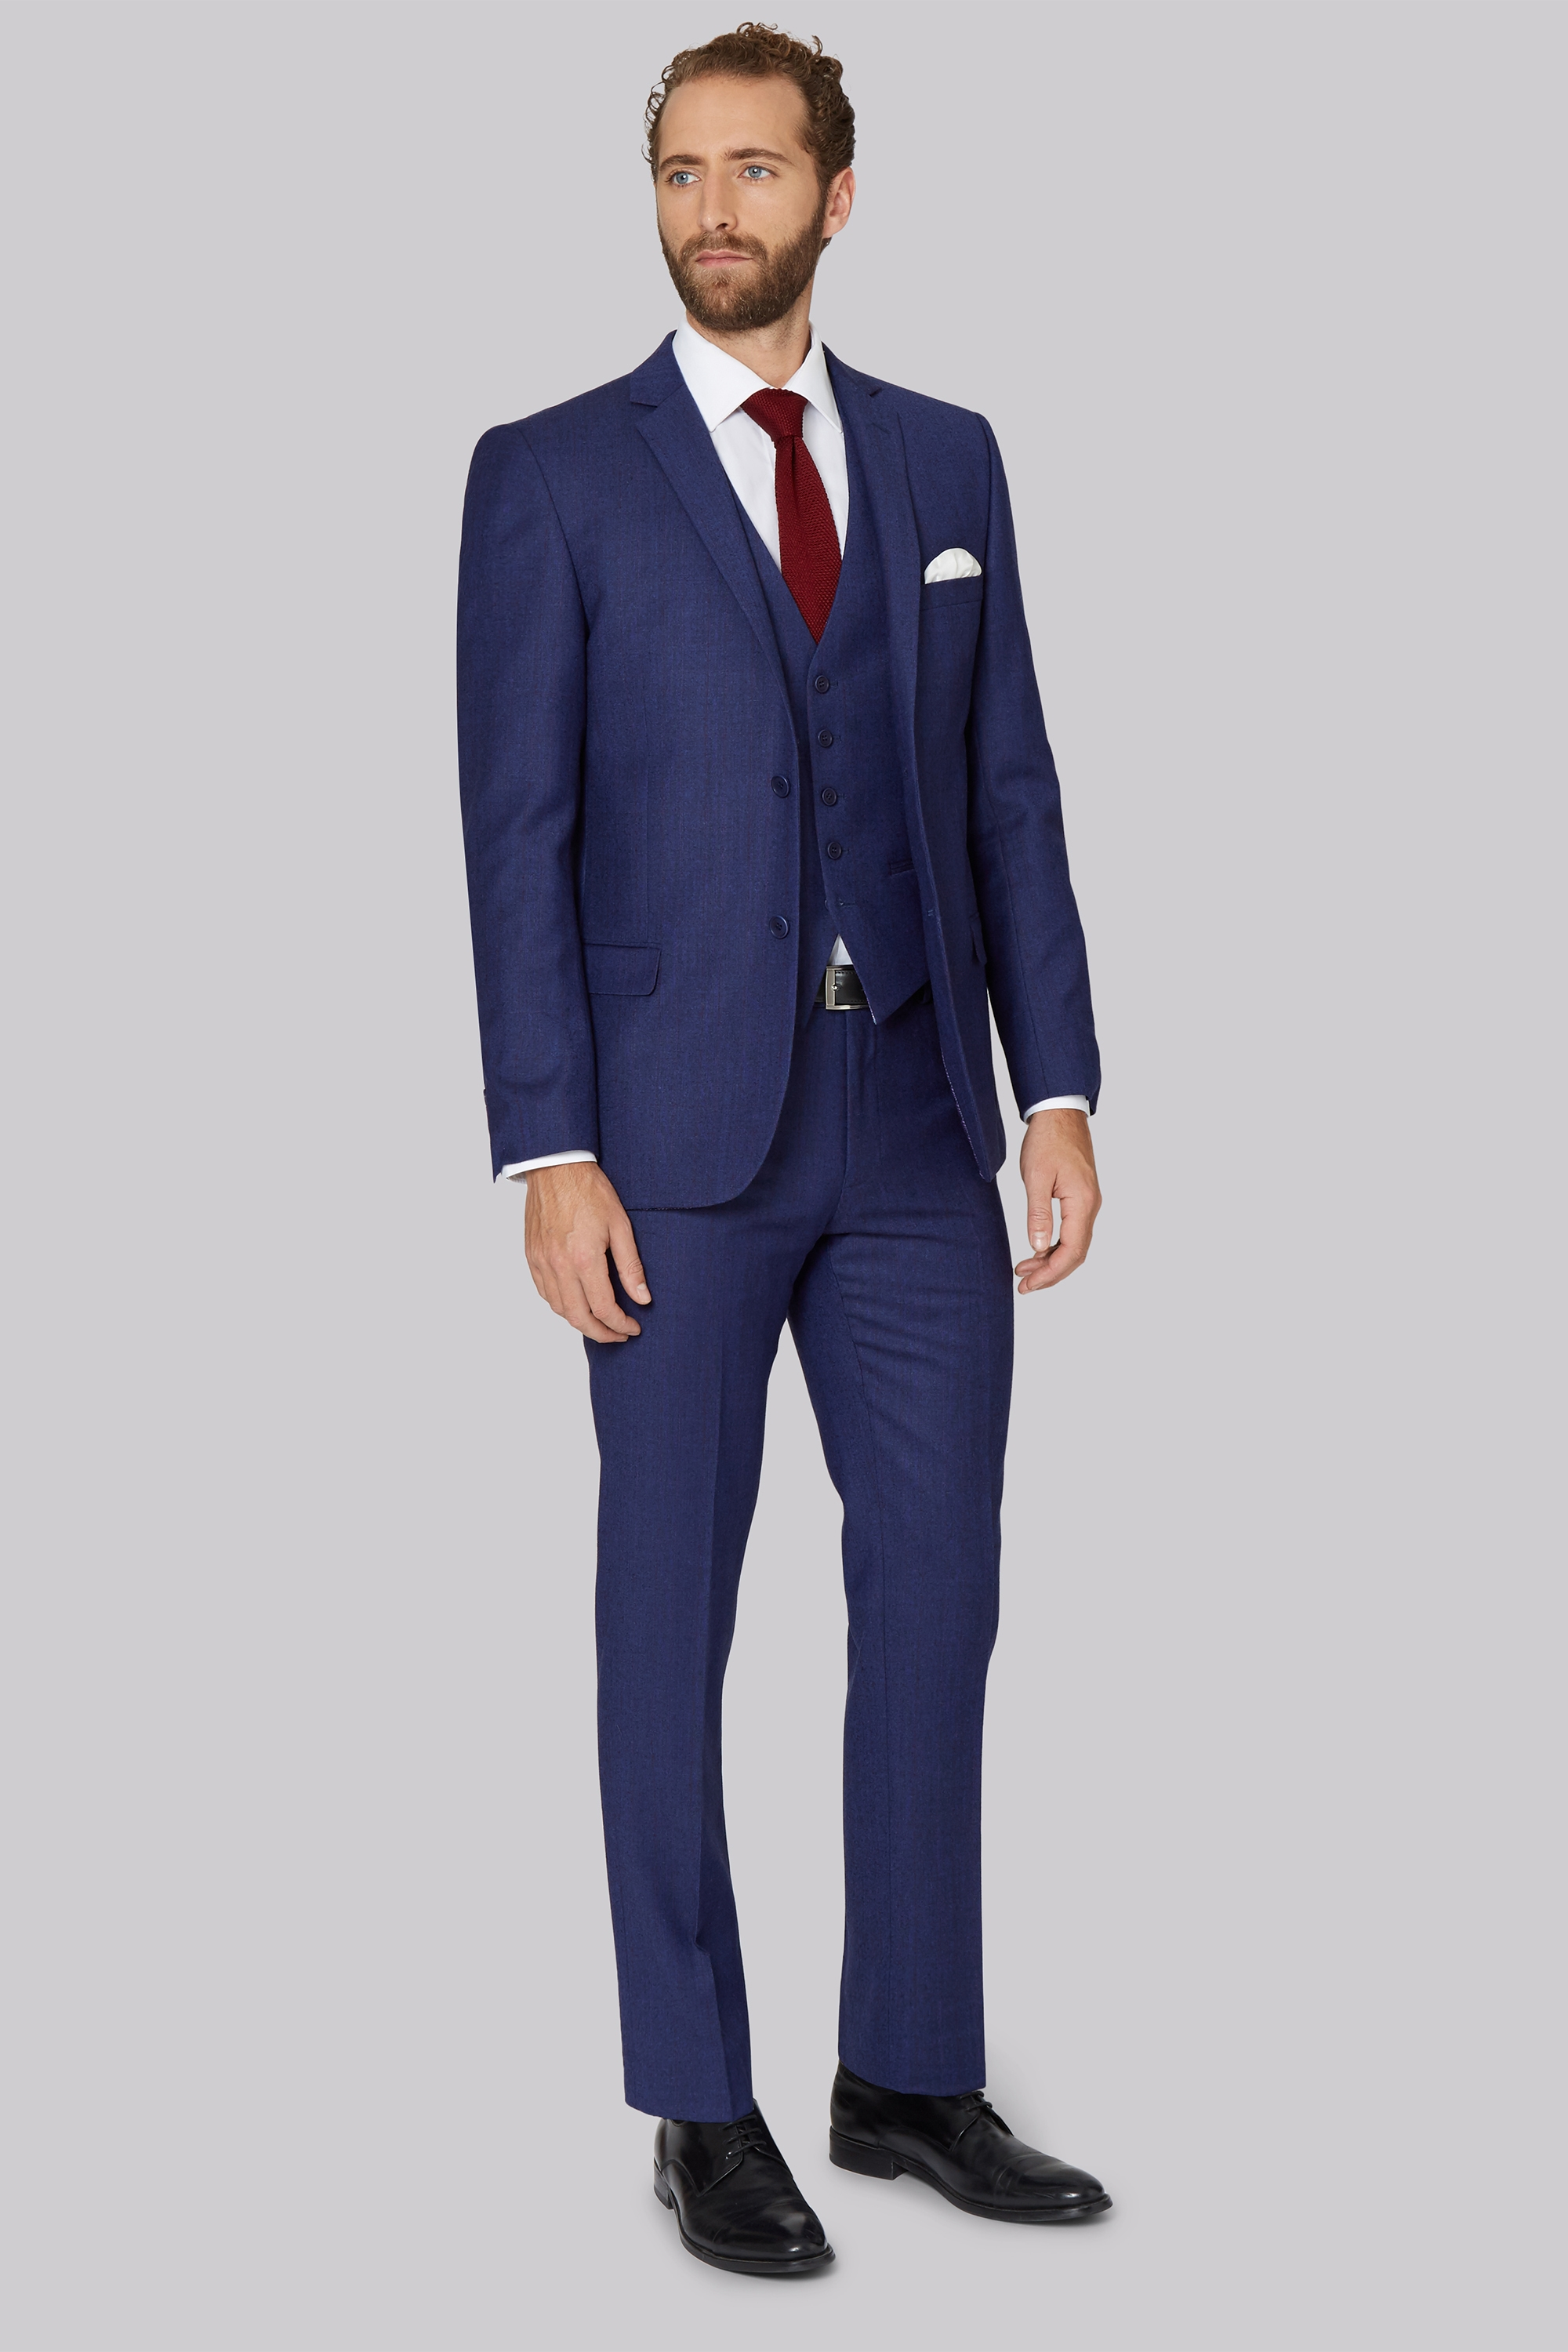 39ba1377d5b06 Ted Baker Tailored Fit Blue with Violet Check Suit Jacket